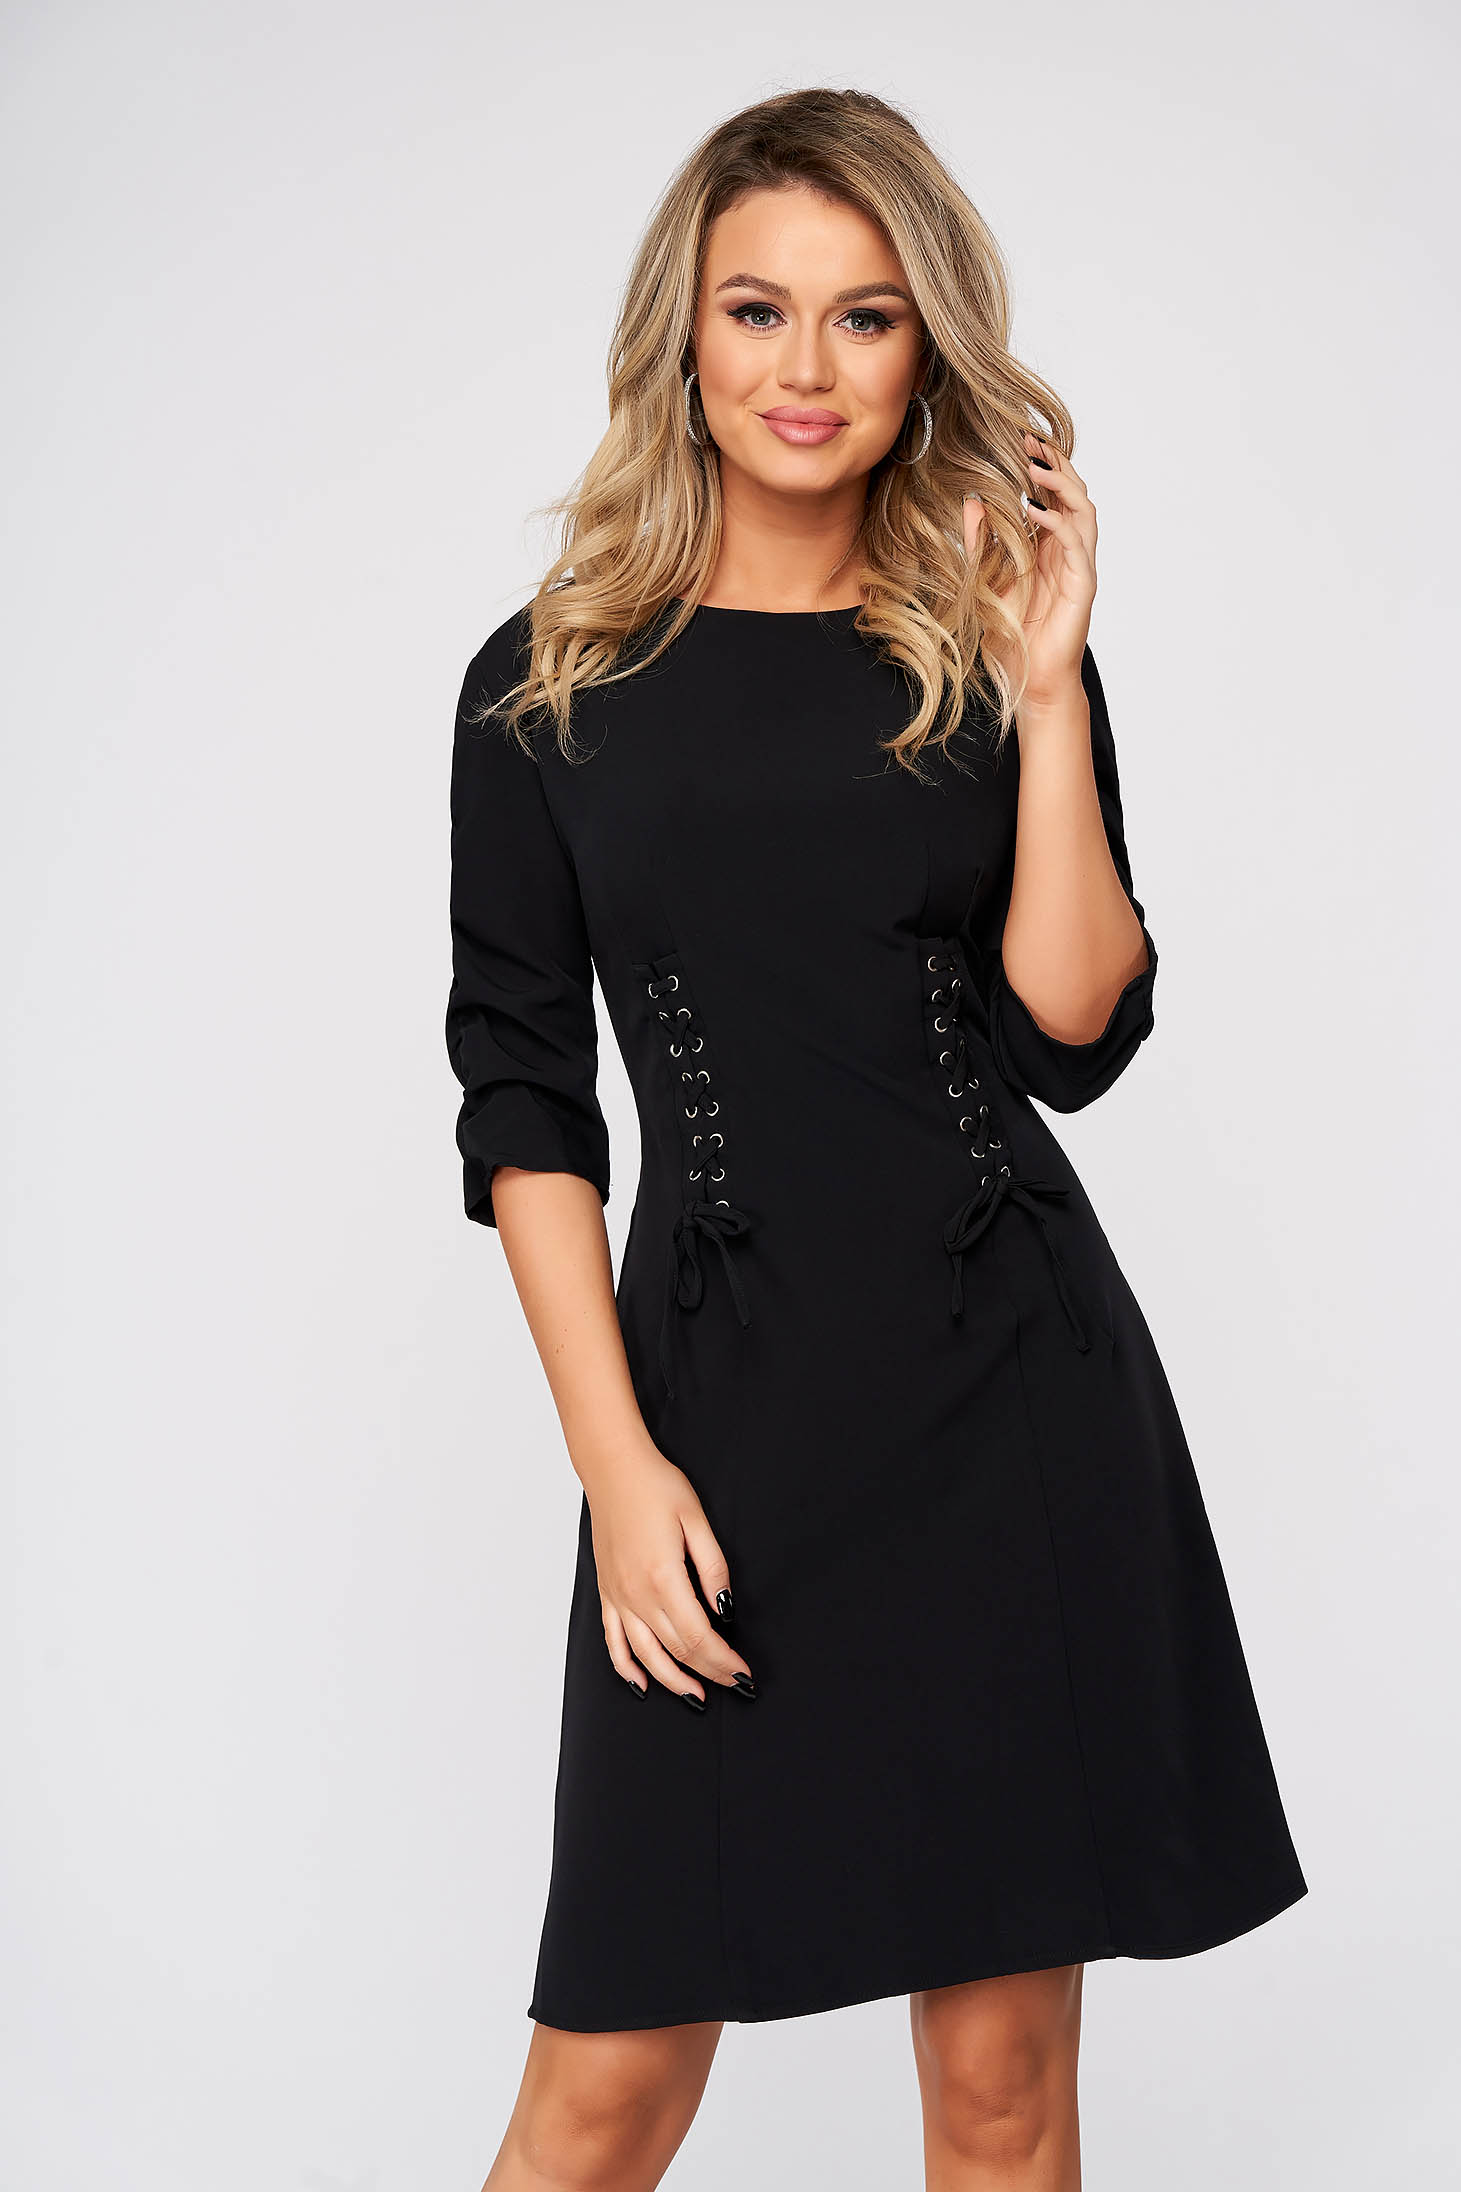 Black dress short cut daily cloche with 3/4 sleeves